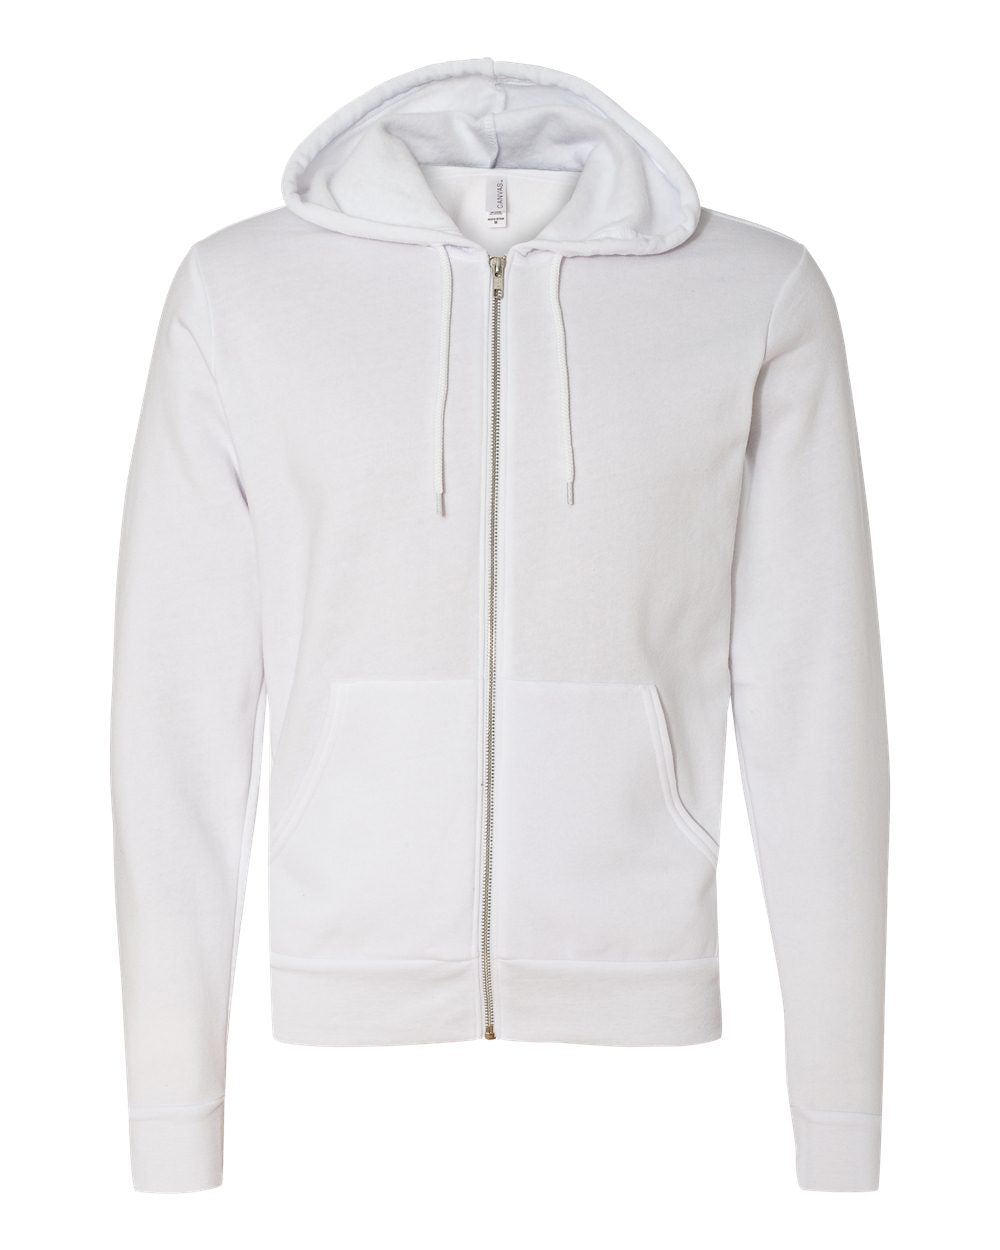 Bella + Canvas - Unisex Full-Zip Hooded Sweatshirt - Silkscreen - 3739